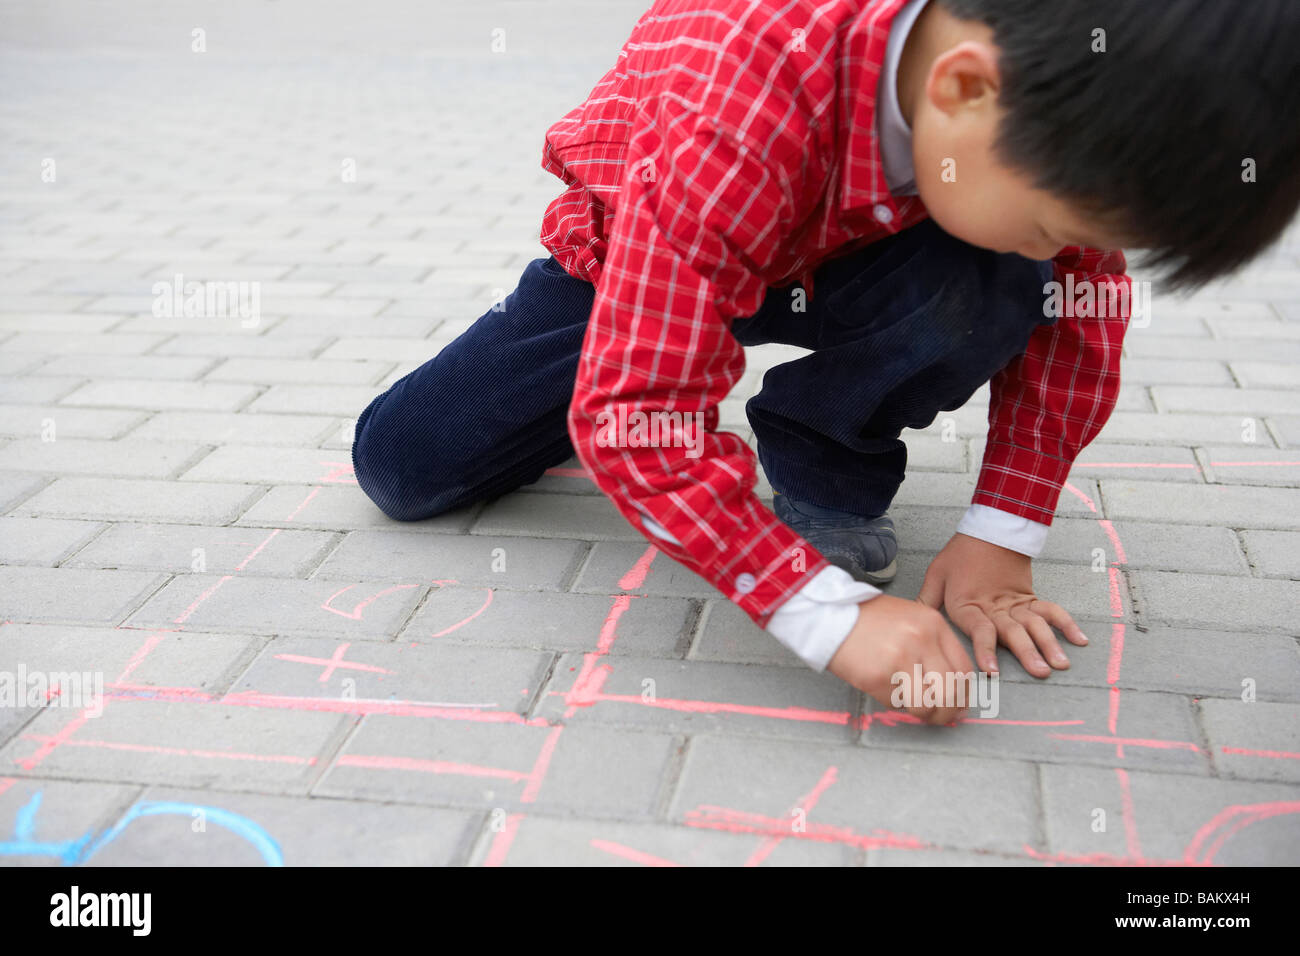 Boy Drawing On Sidewalk With Chalk - Stock Image